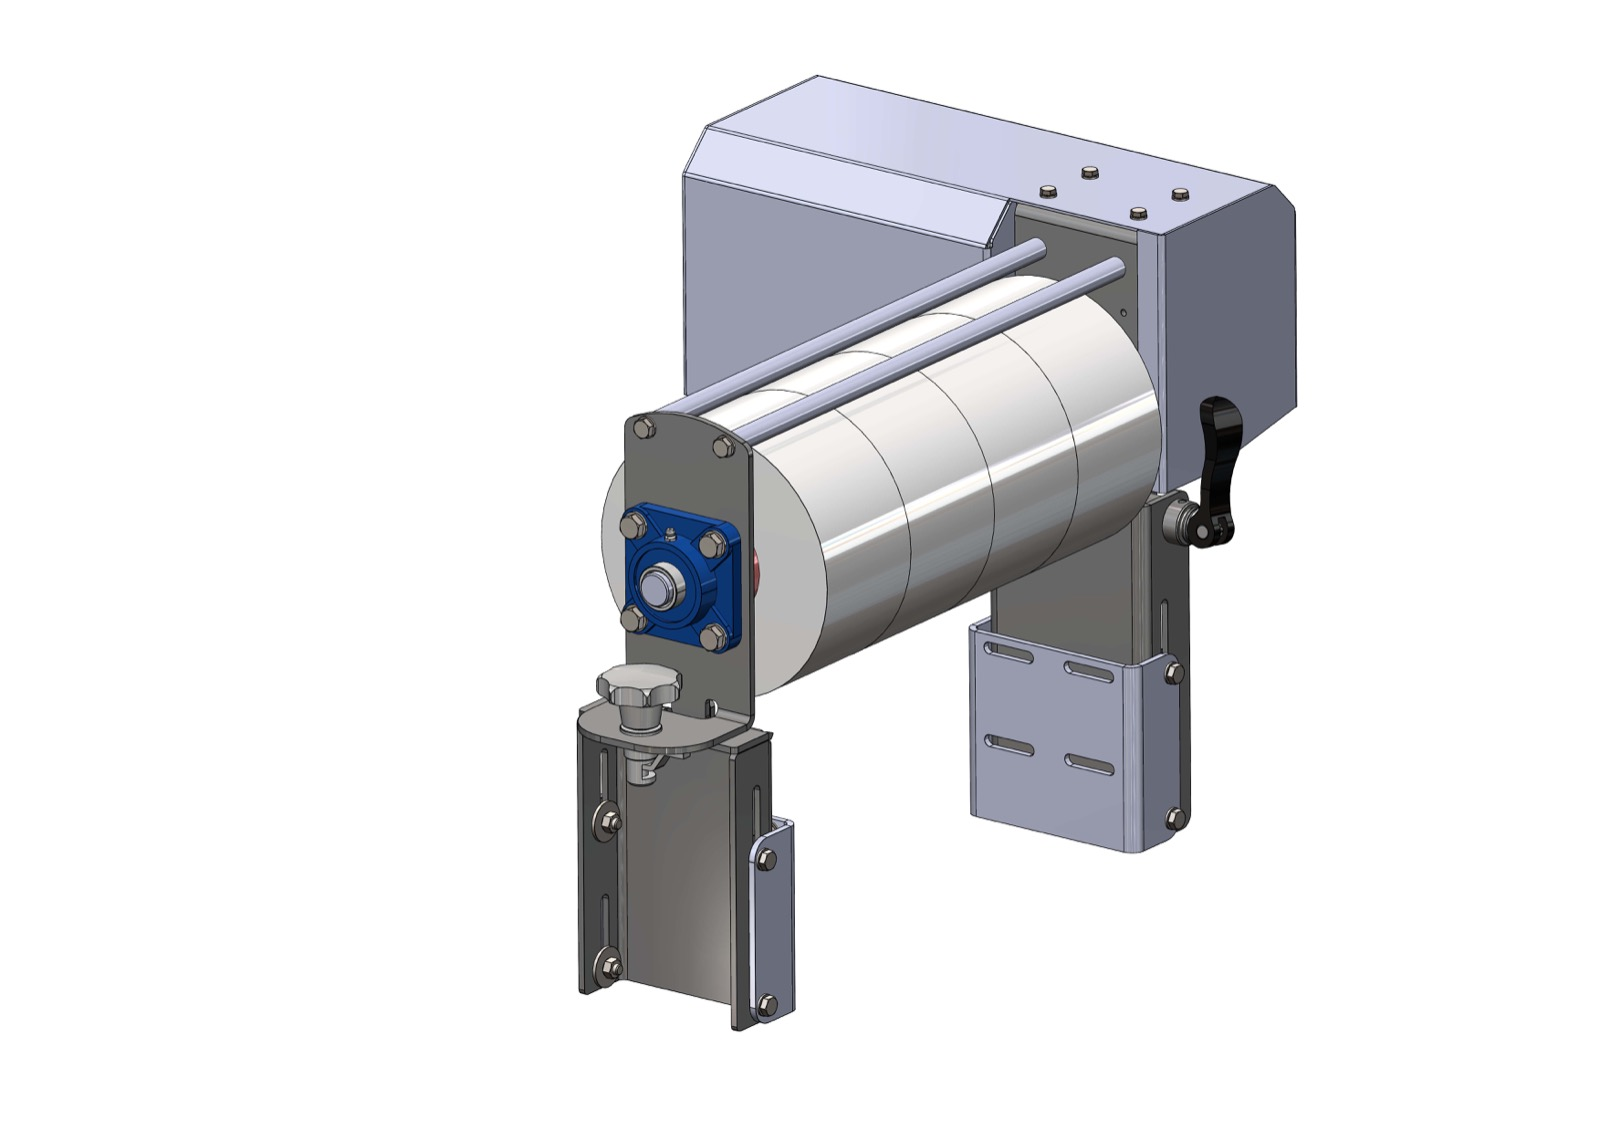 https://www.industrialproductsolutions.nl/wp-content/uploads/2021/05/WhatsApp-Image-2021-05-27-at-14.17.25-12.jpeg